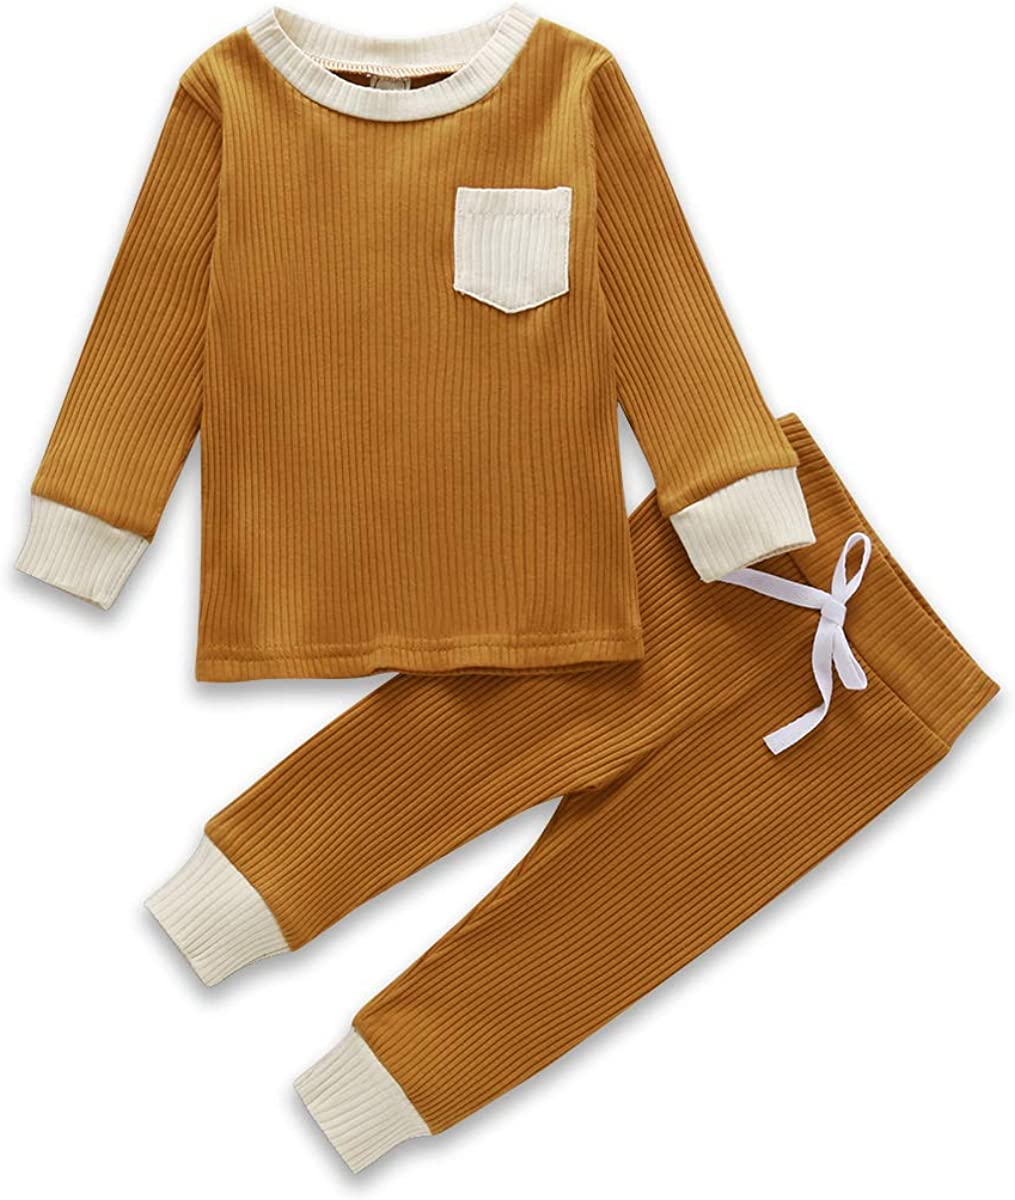 Toddler Baby Boy Girl Clothes Solid Long Sleeve Sweatshirt Tops Knitted Pants Set Fall Winter Outfits